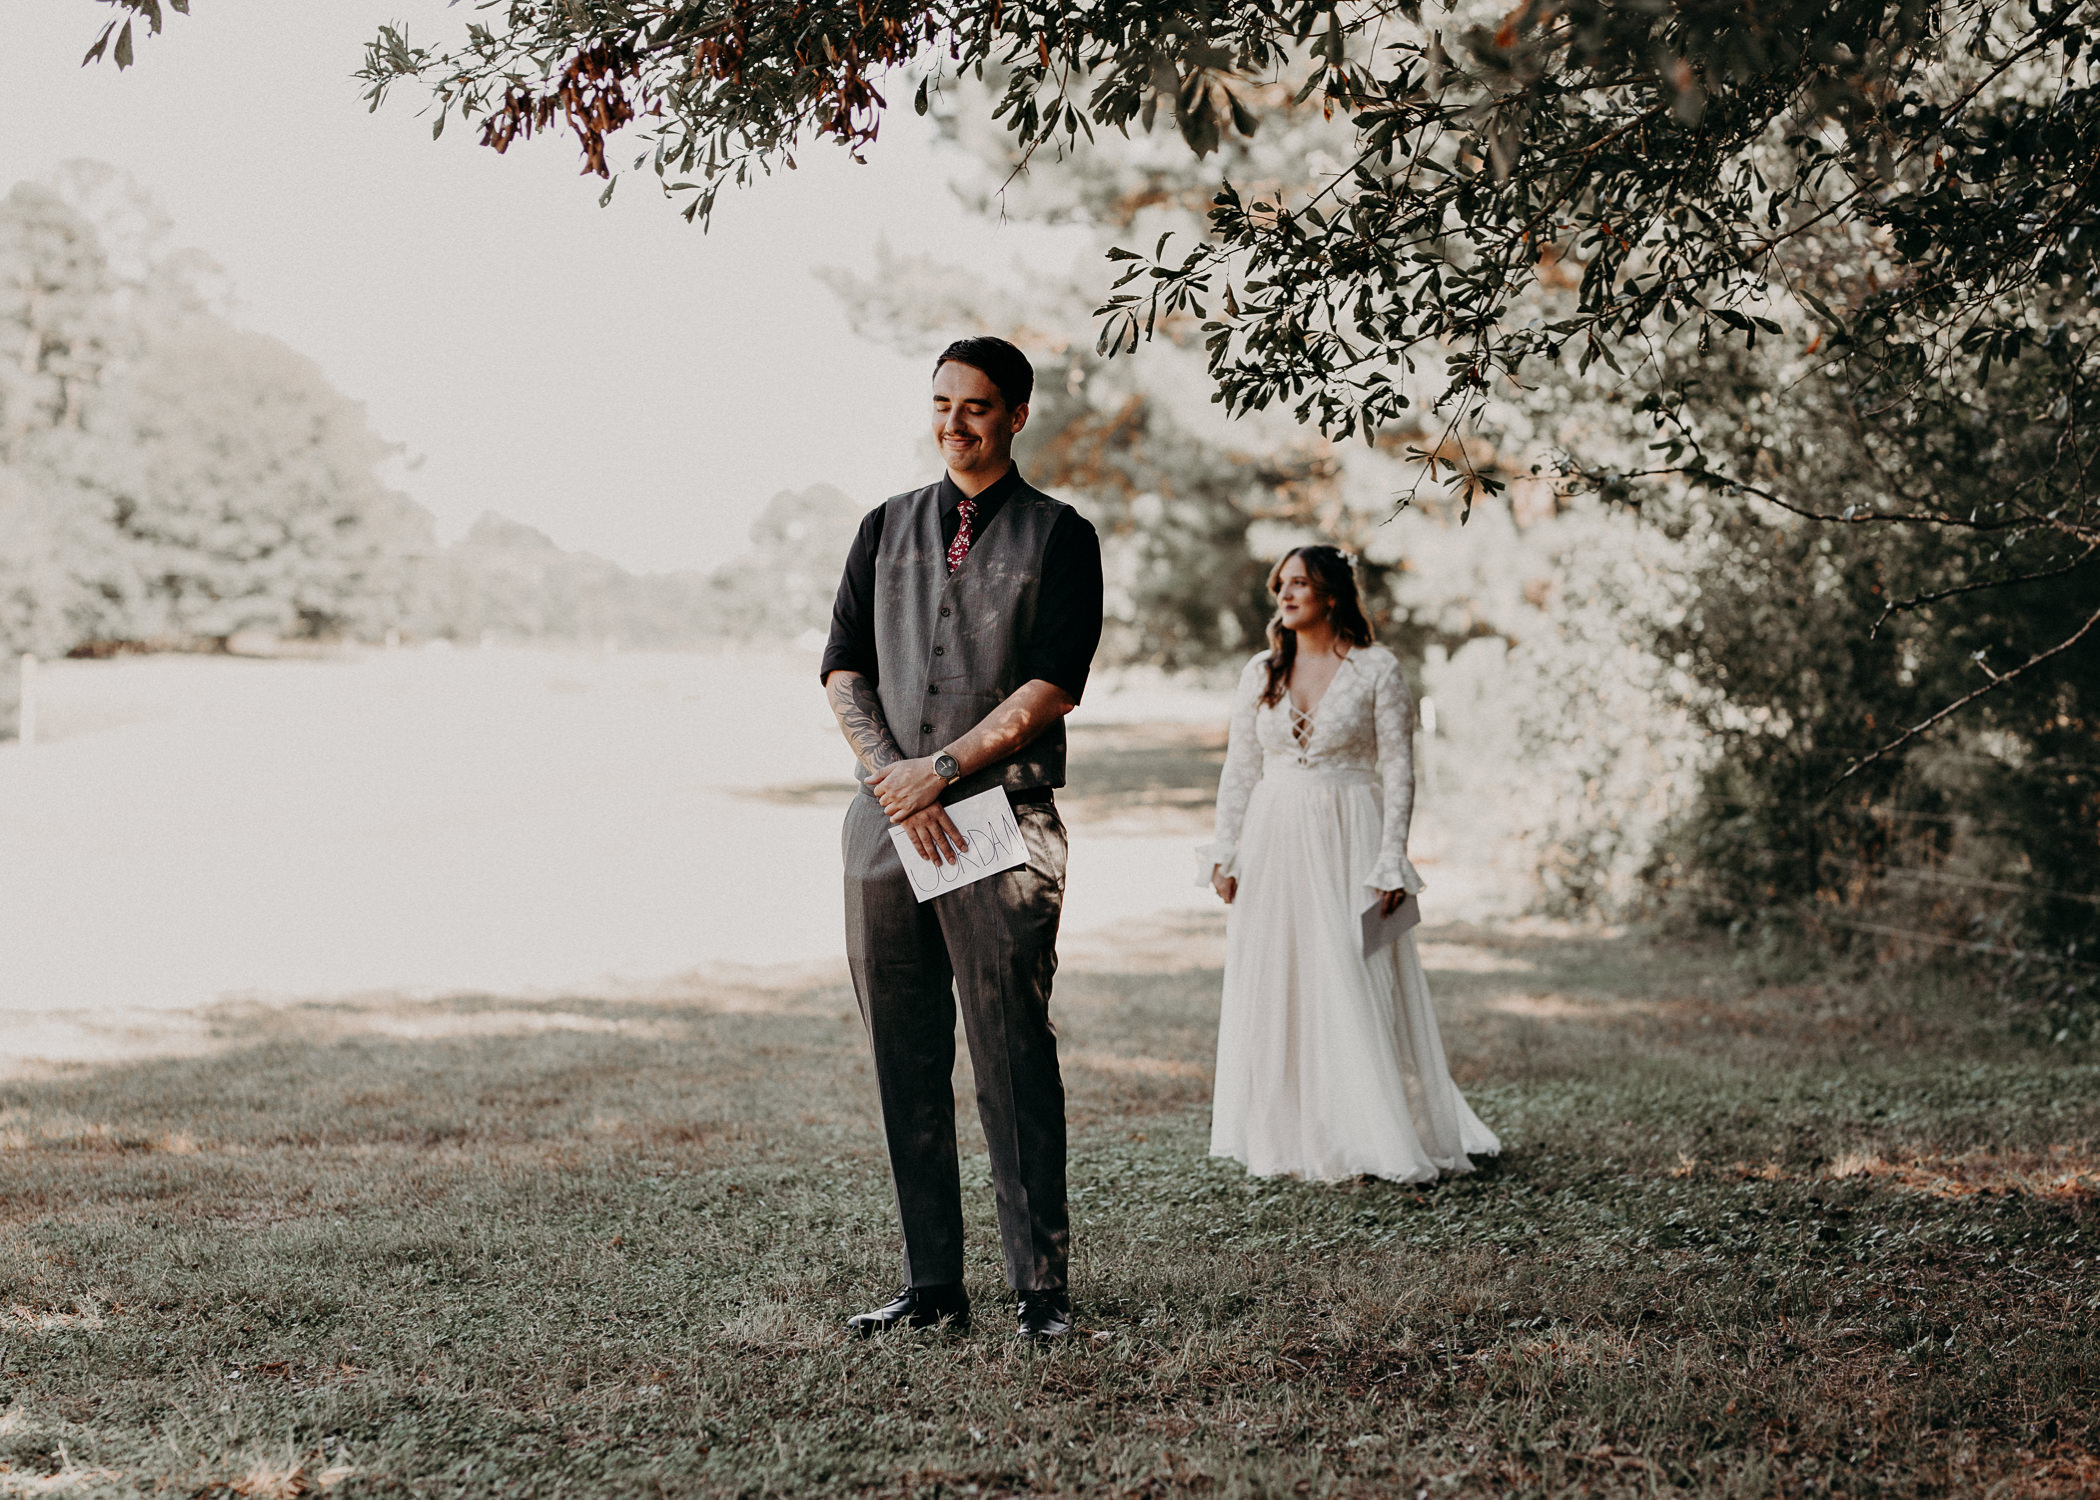 38 - Wedding first look : Atlanta wedding photographer .jpg